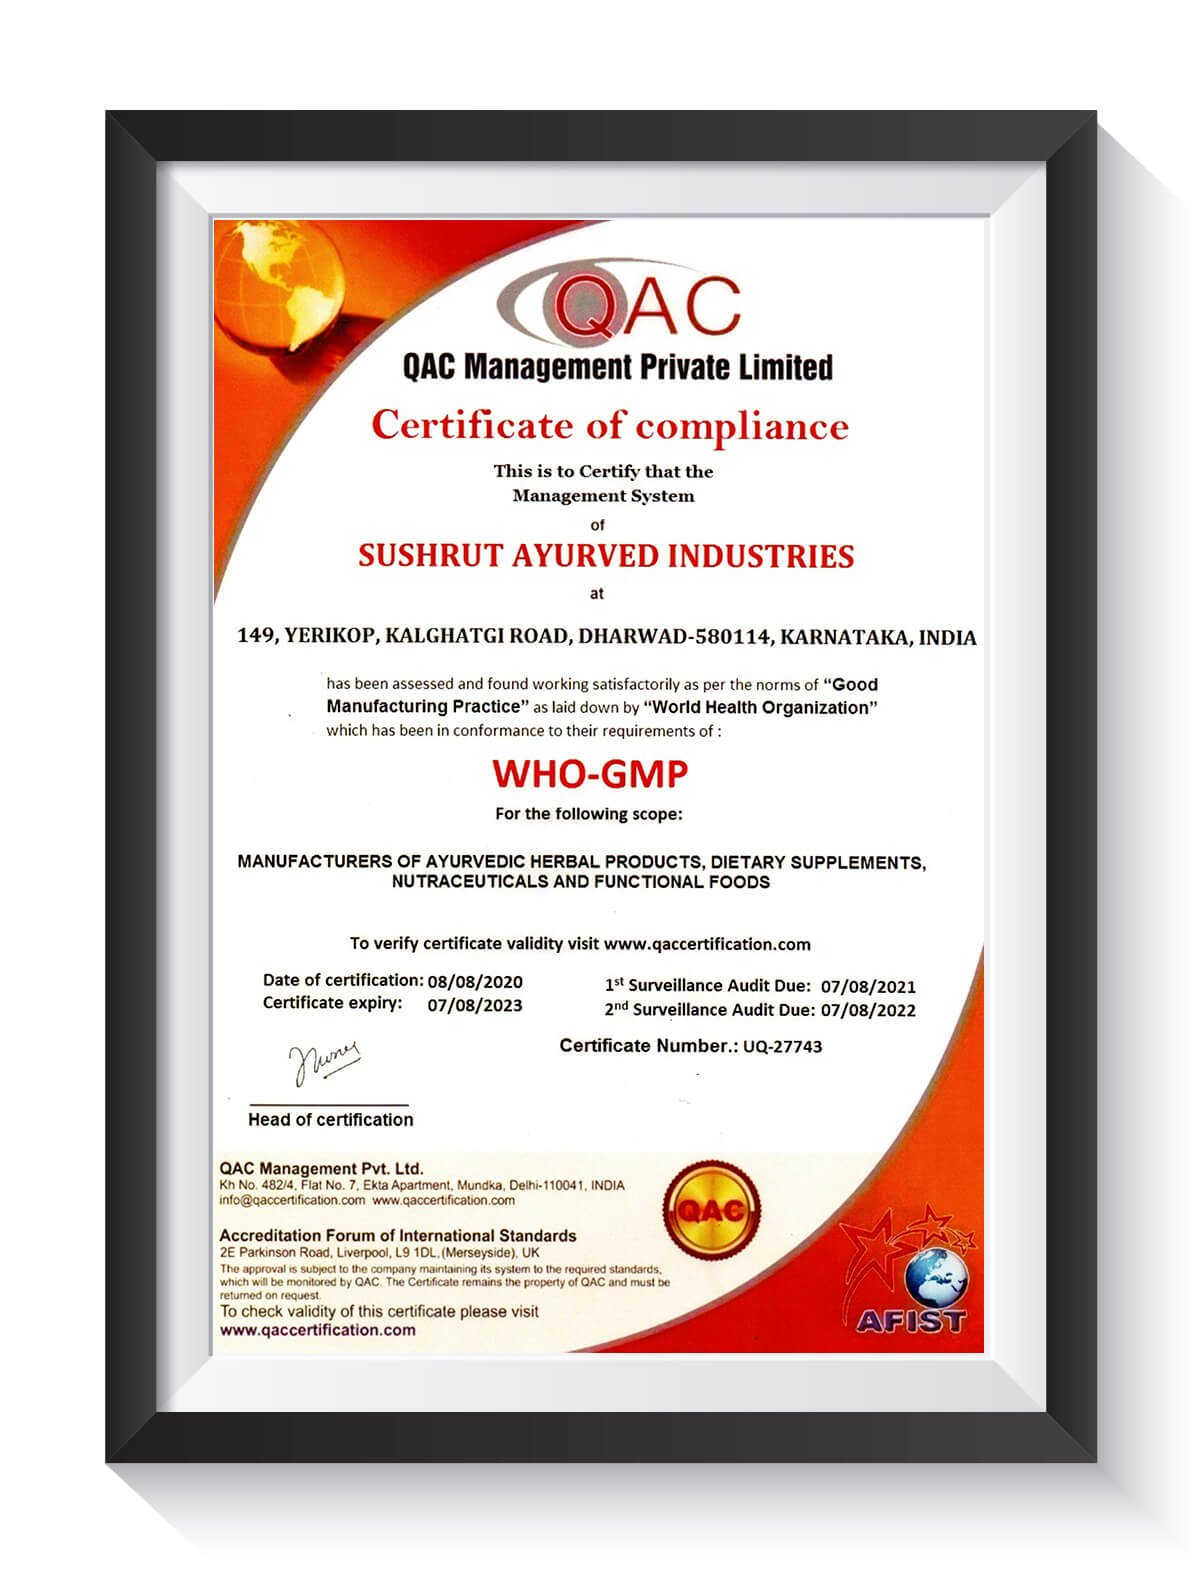 WHO-GMP Certified Manufacturer of Ayurvedic Herbal Products for Diabetes